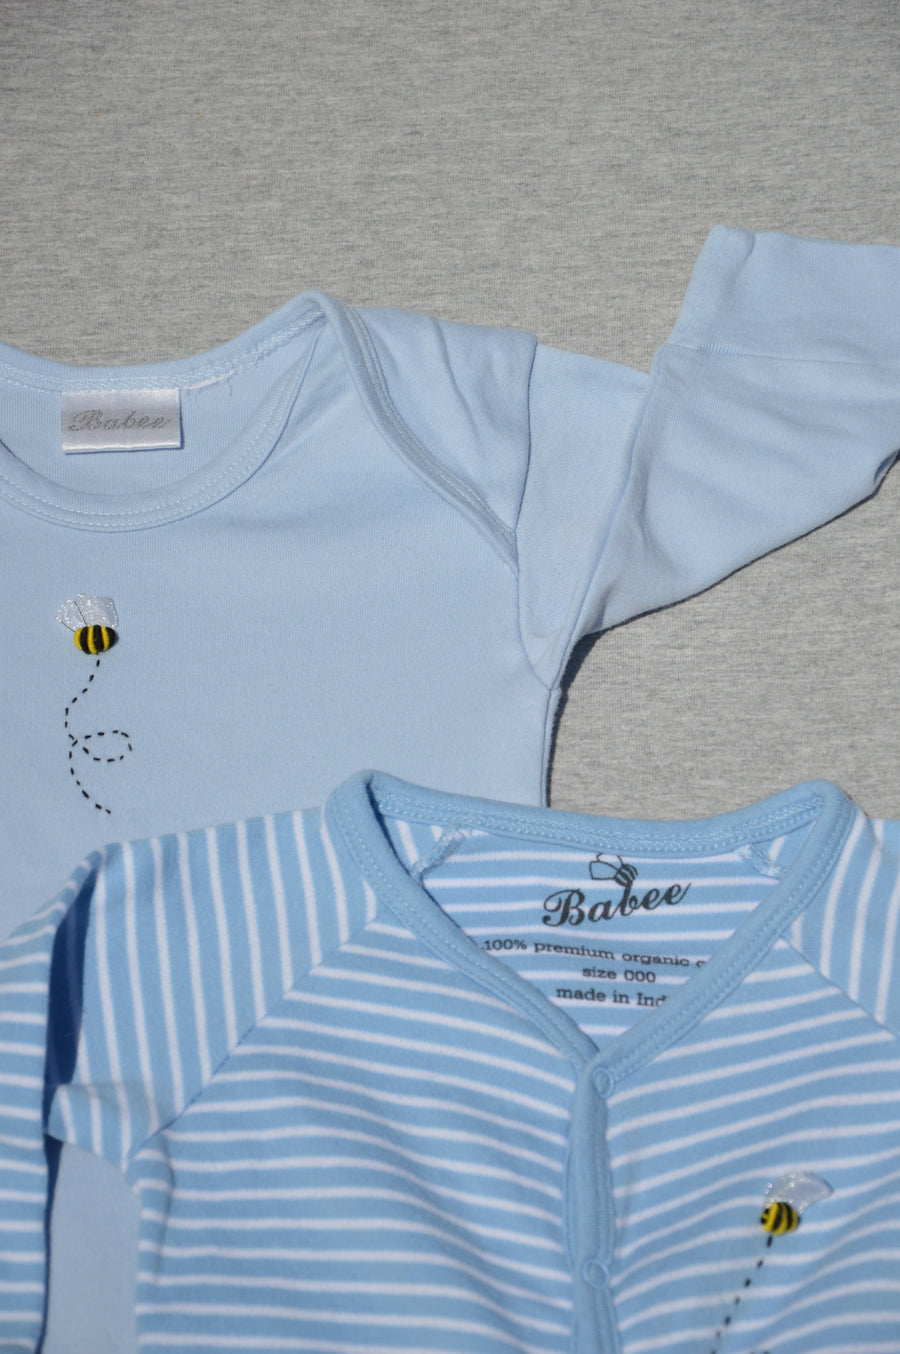 Dimples Babee - nearly new - striped onesie & pale blue nightgown, size 0-3m